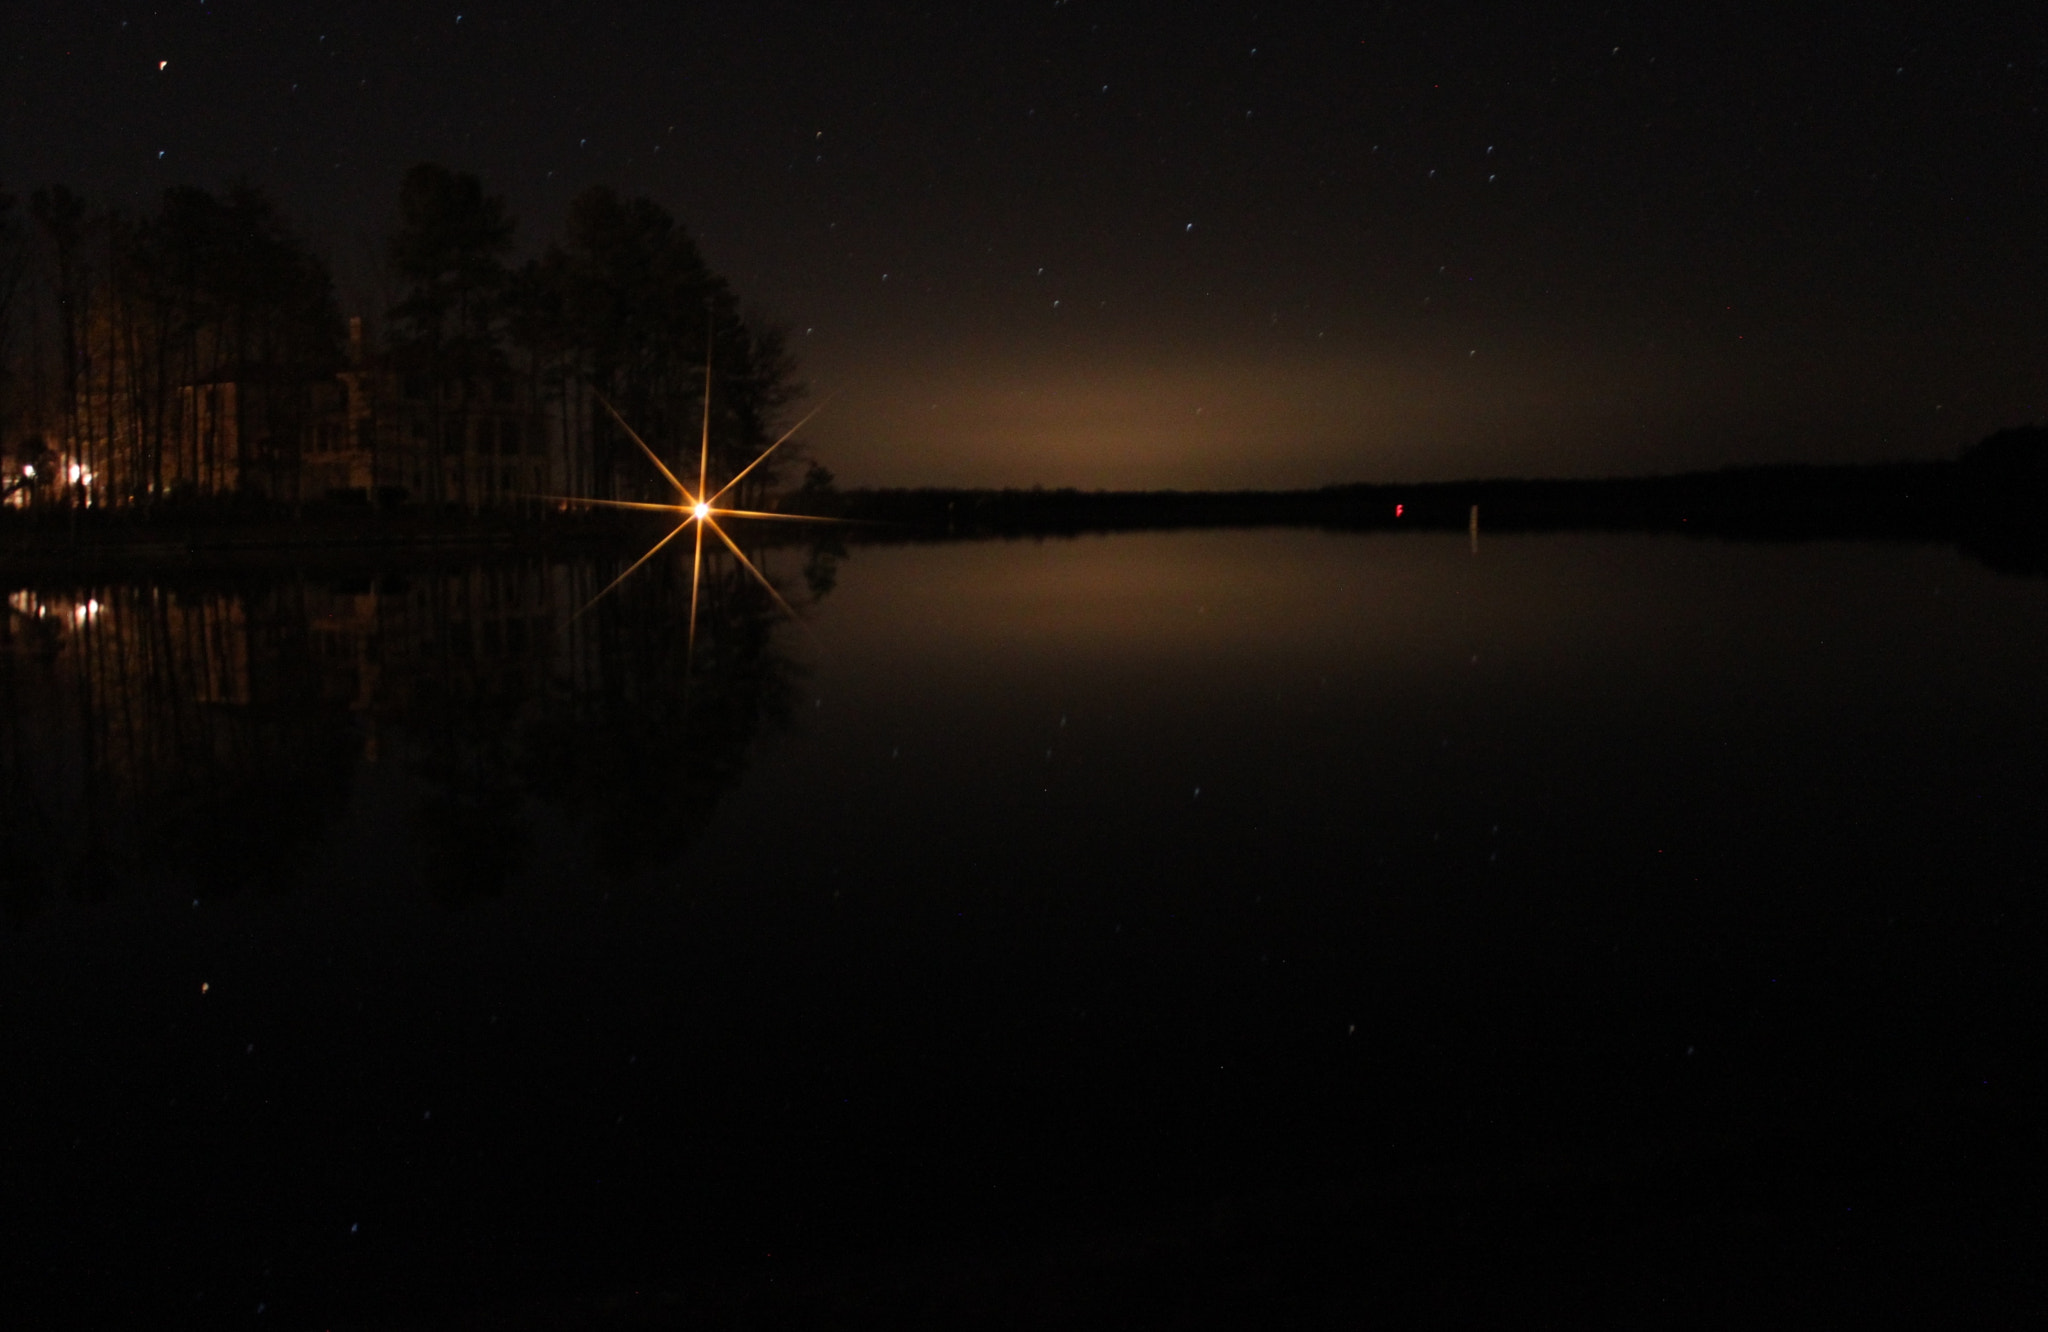 Photograph Tiny Stars across the Lake by Palmer Allen on 500px